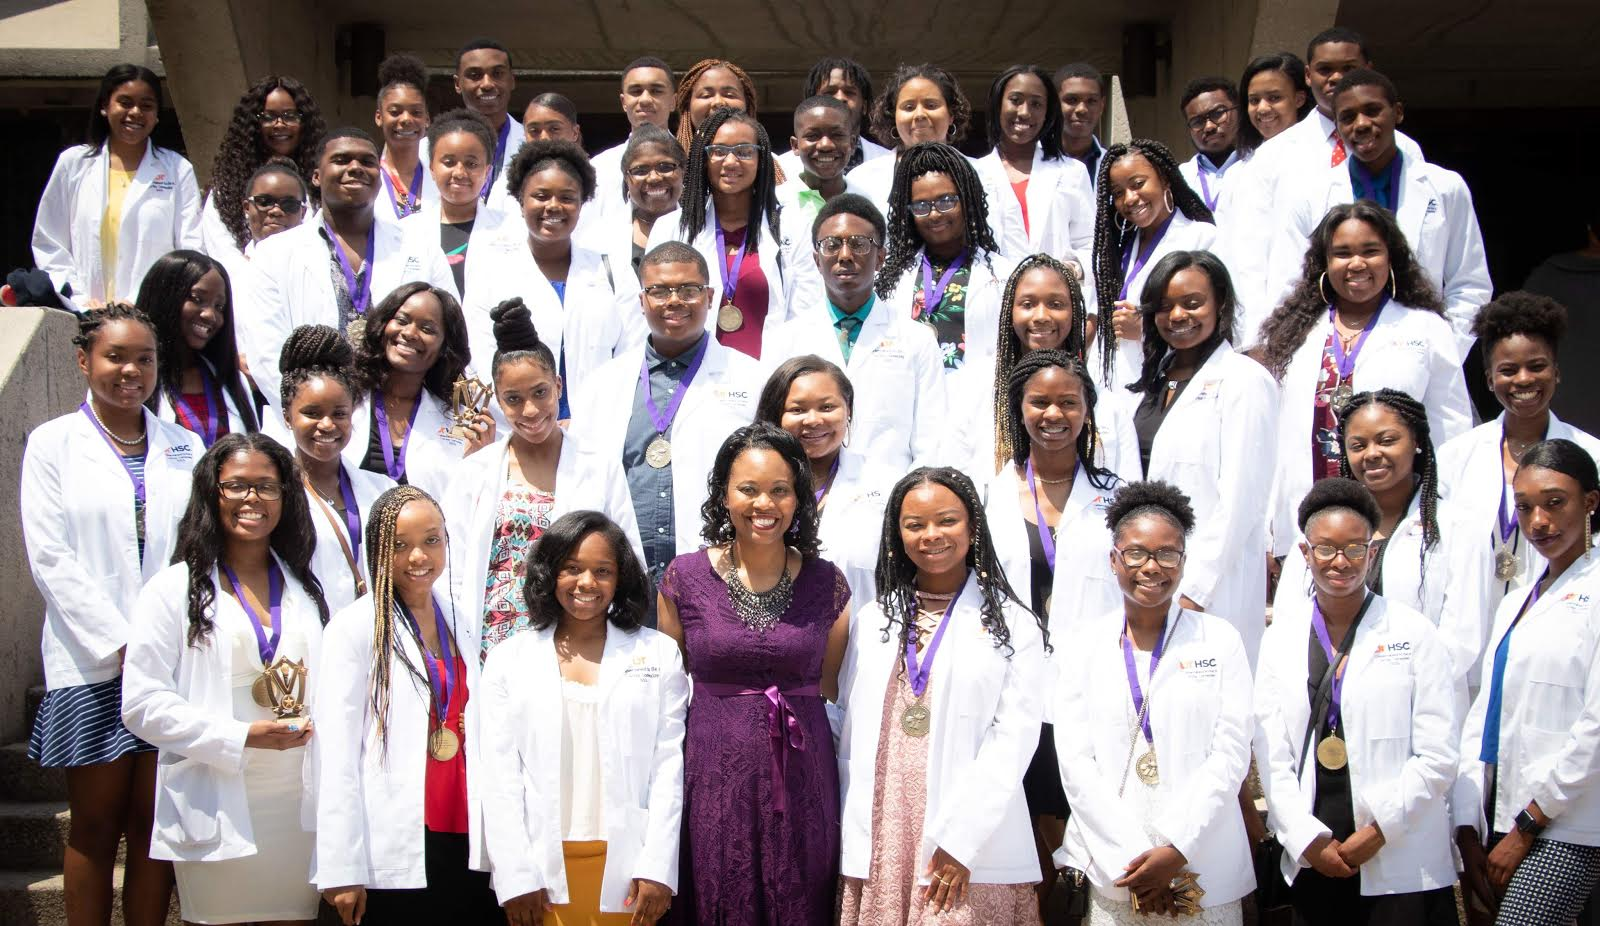 Profiles — Melanin in Medicine*